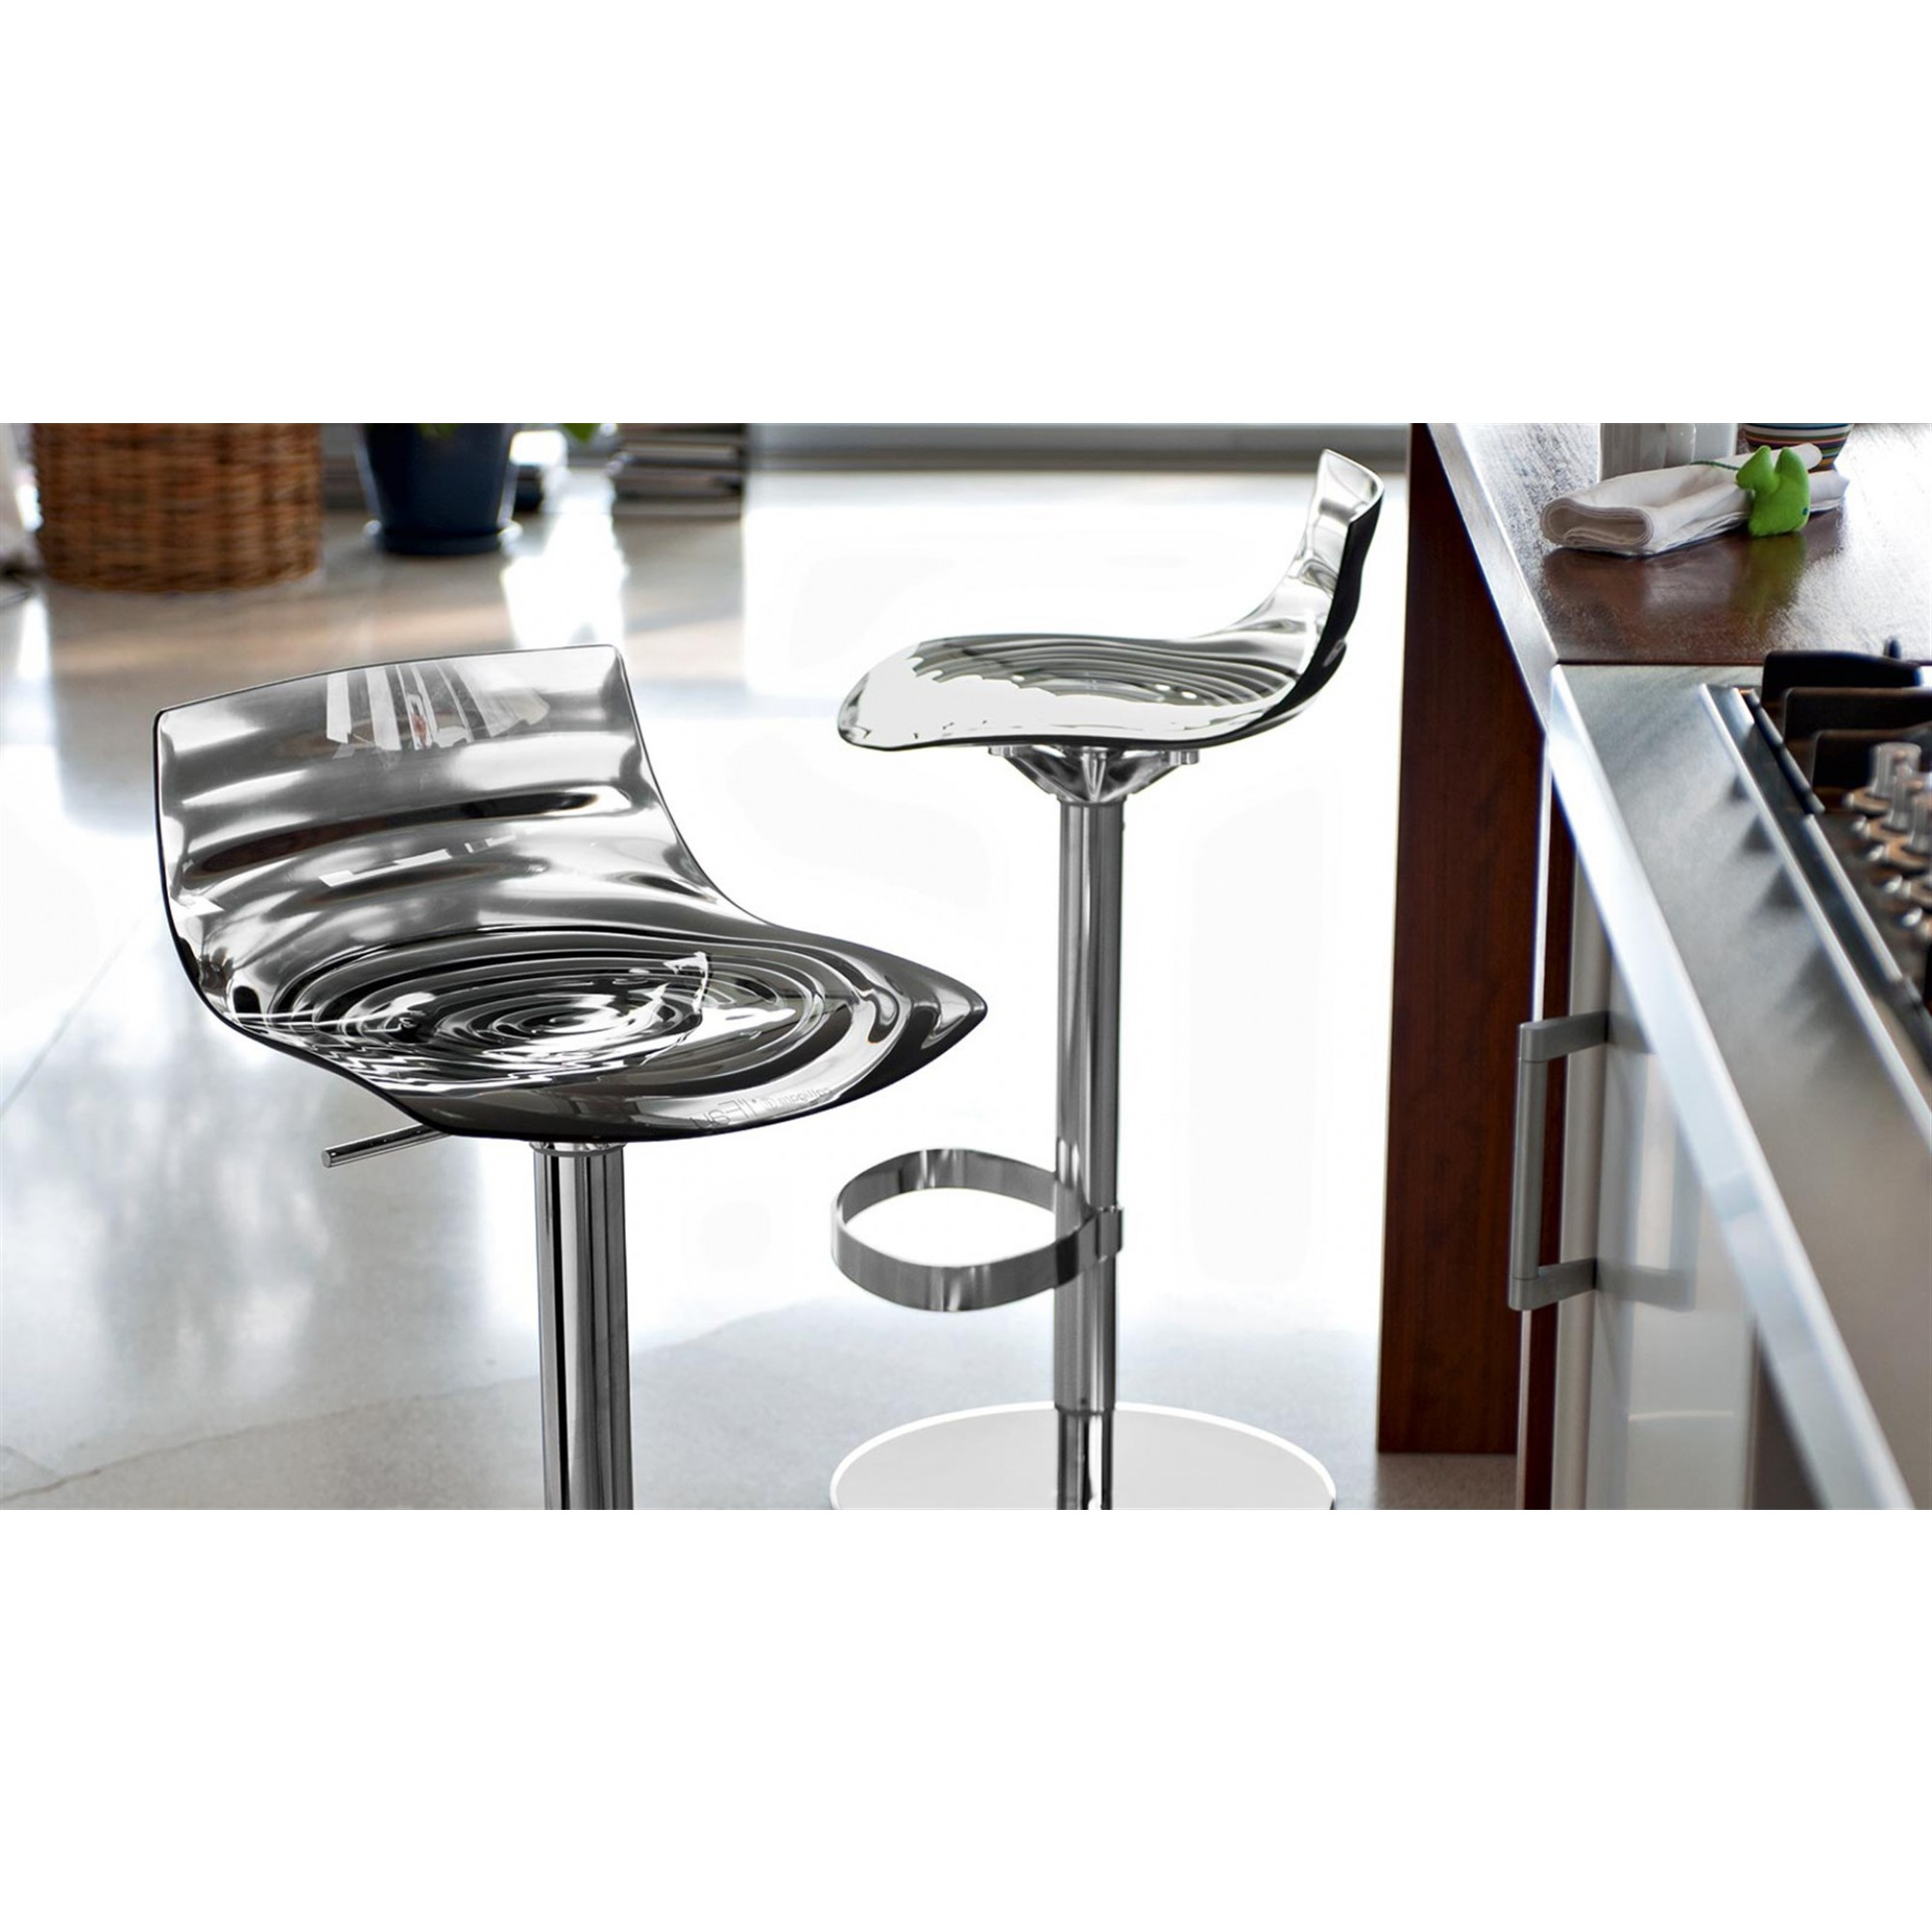 L\'EAU STOOL WITH GAS LIFT | Stools | Seats | CONNUBIA BY CALLIGARIS ...